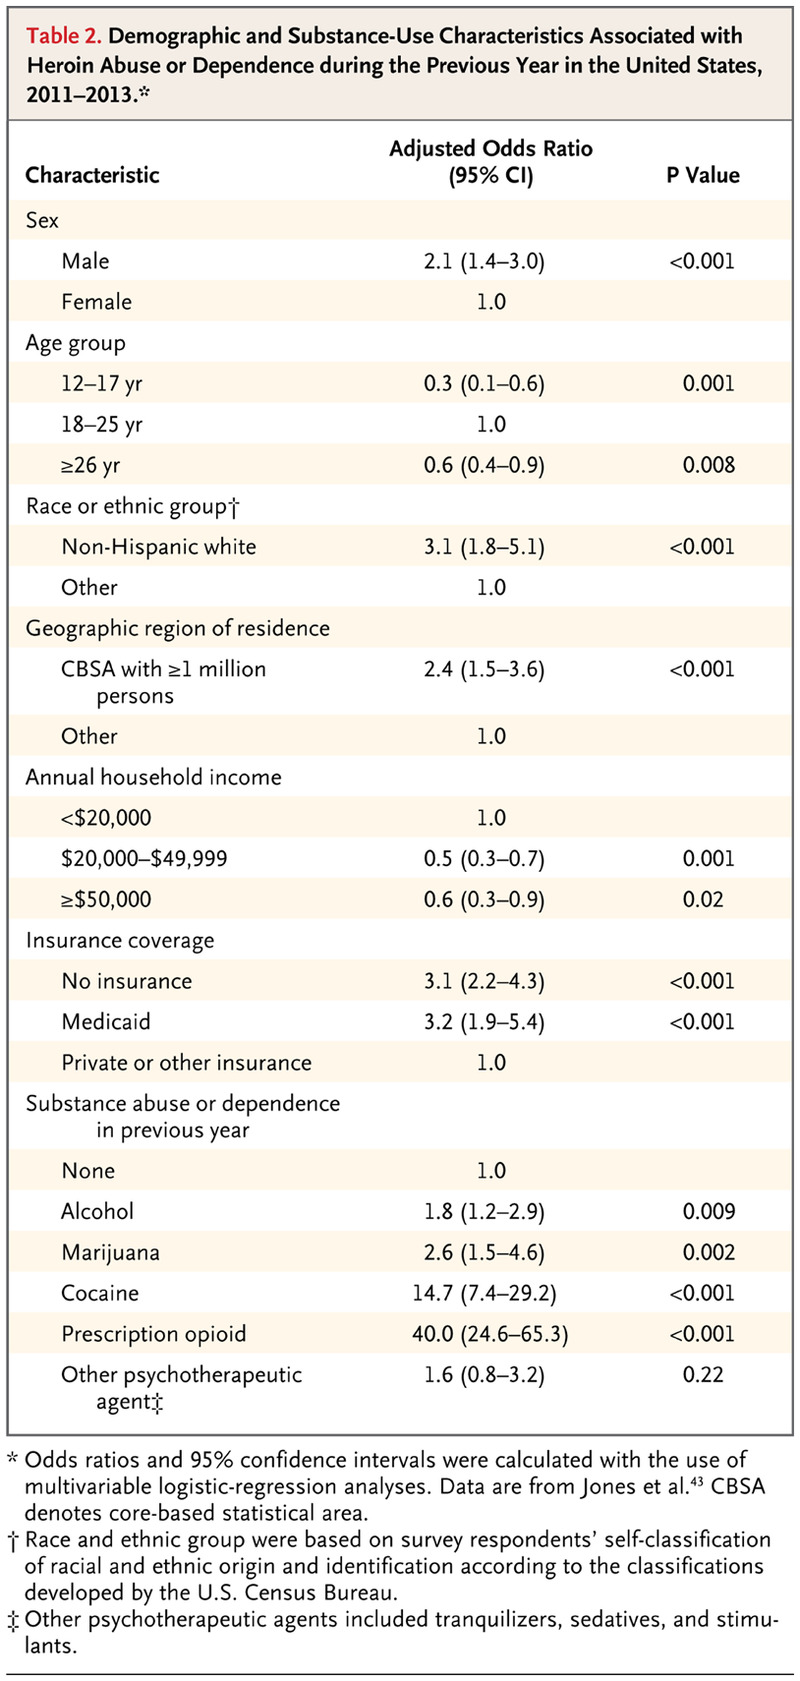 Relationship between Nonmedical Prescription-Opioid Use and